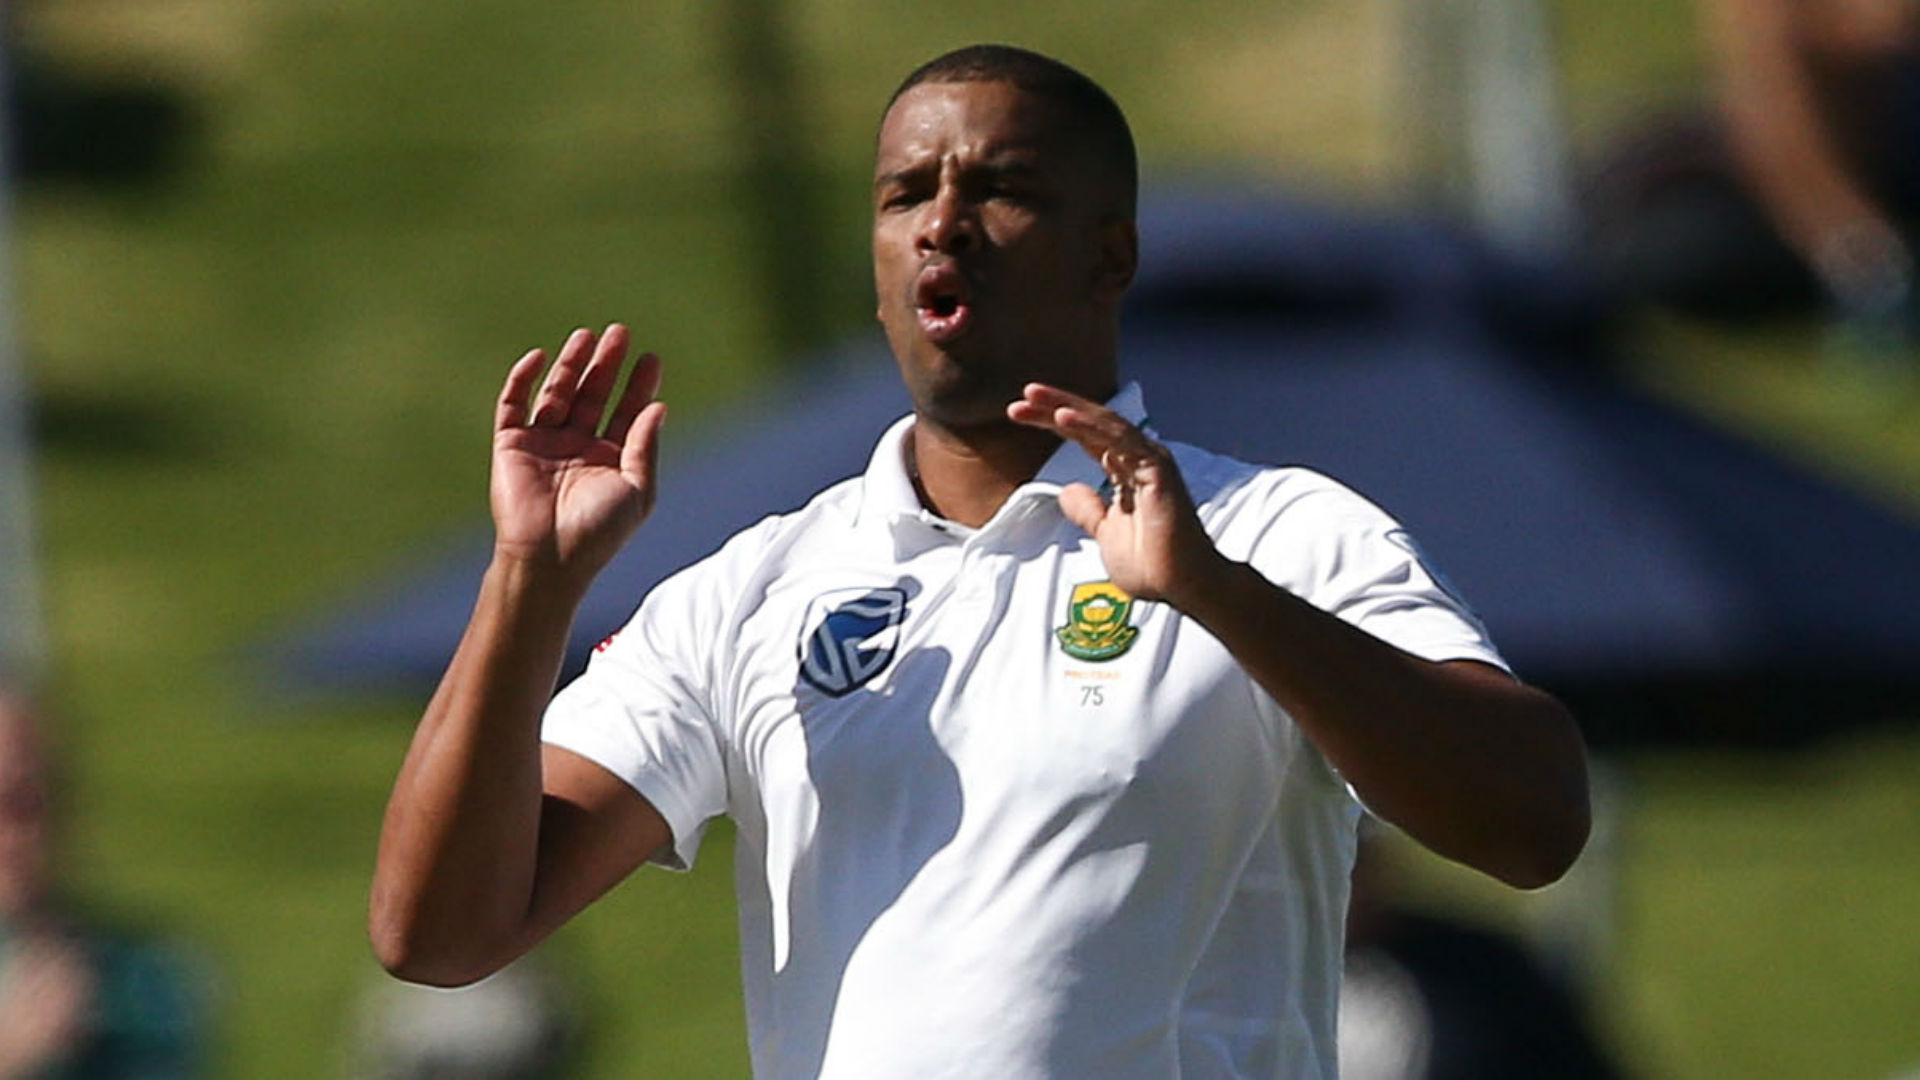 Philander to retire from internationals after England Test series